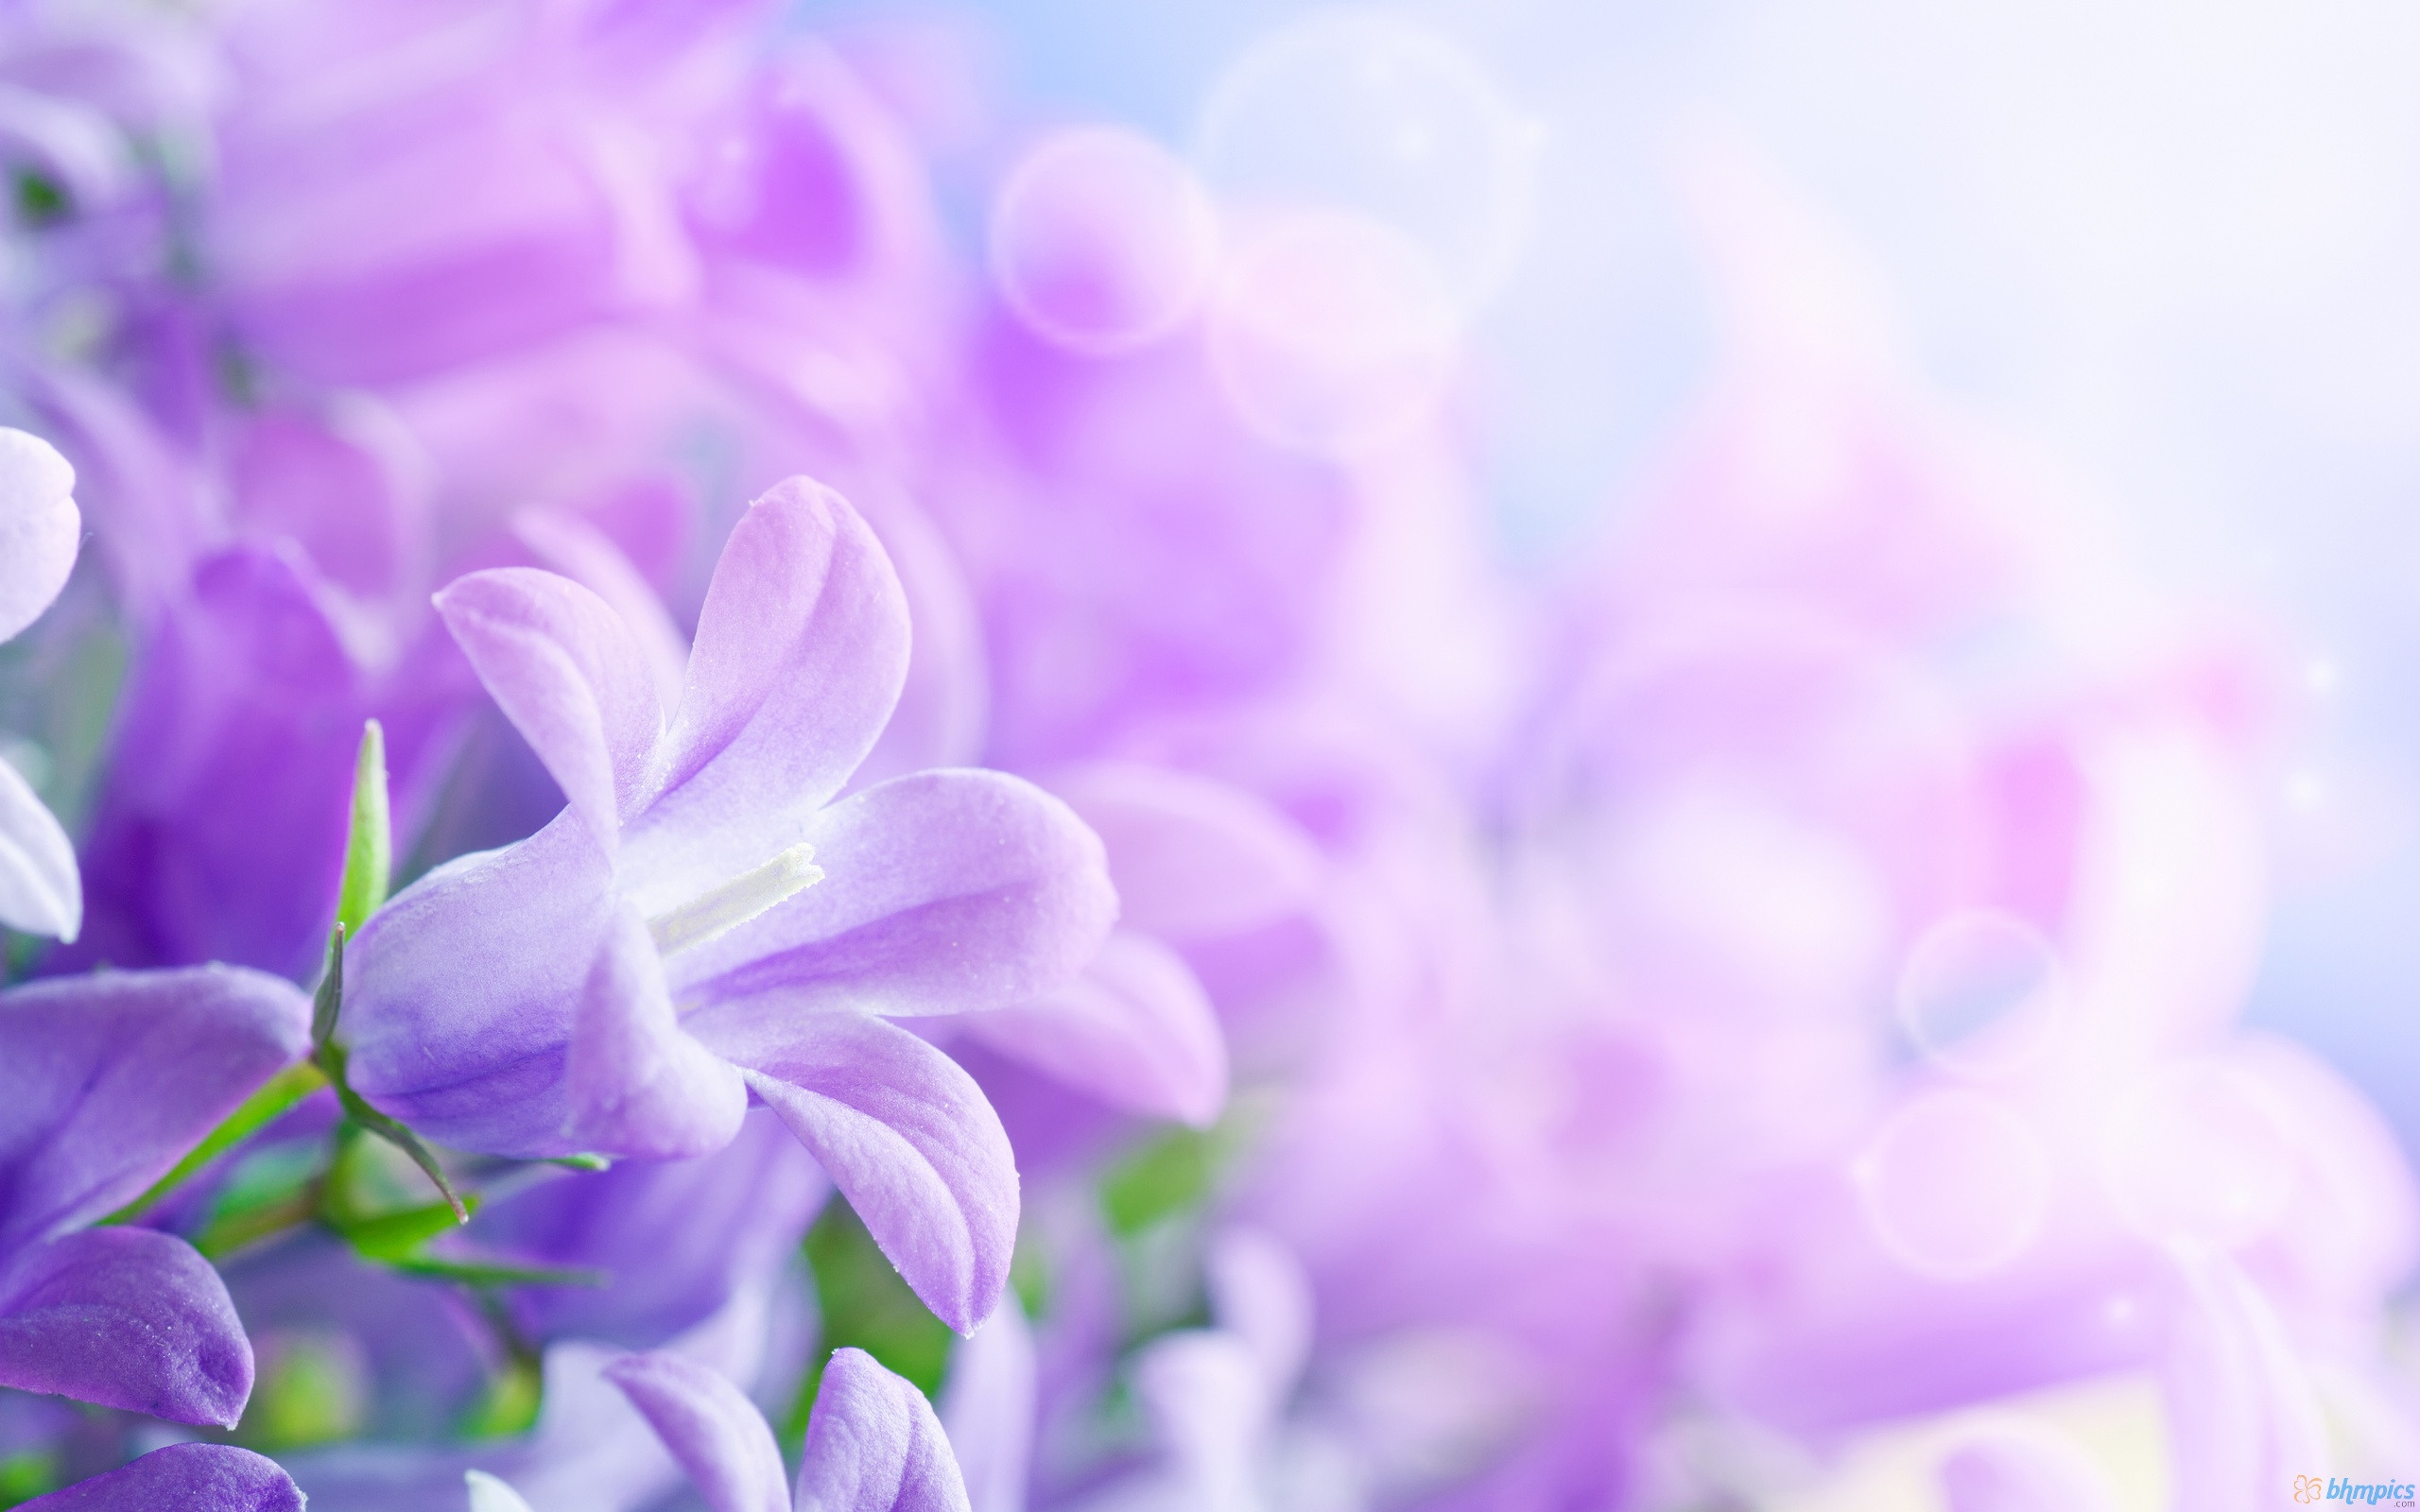 flower 2560x1600 jpg home flowers purple spring flower 2560x1600